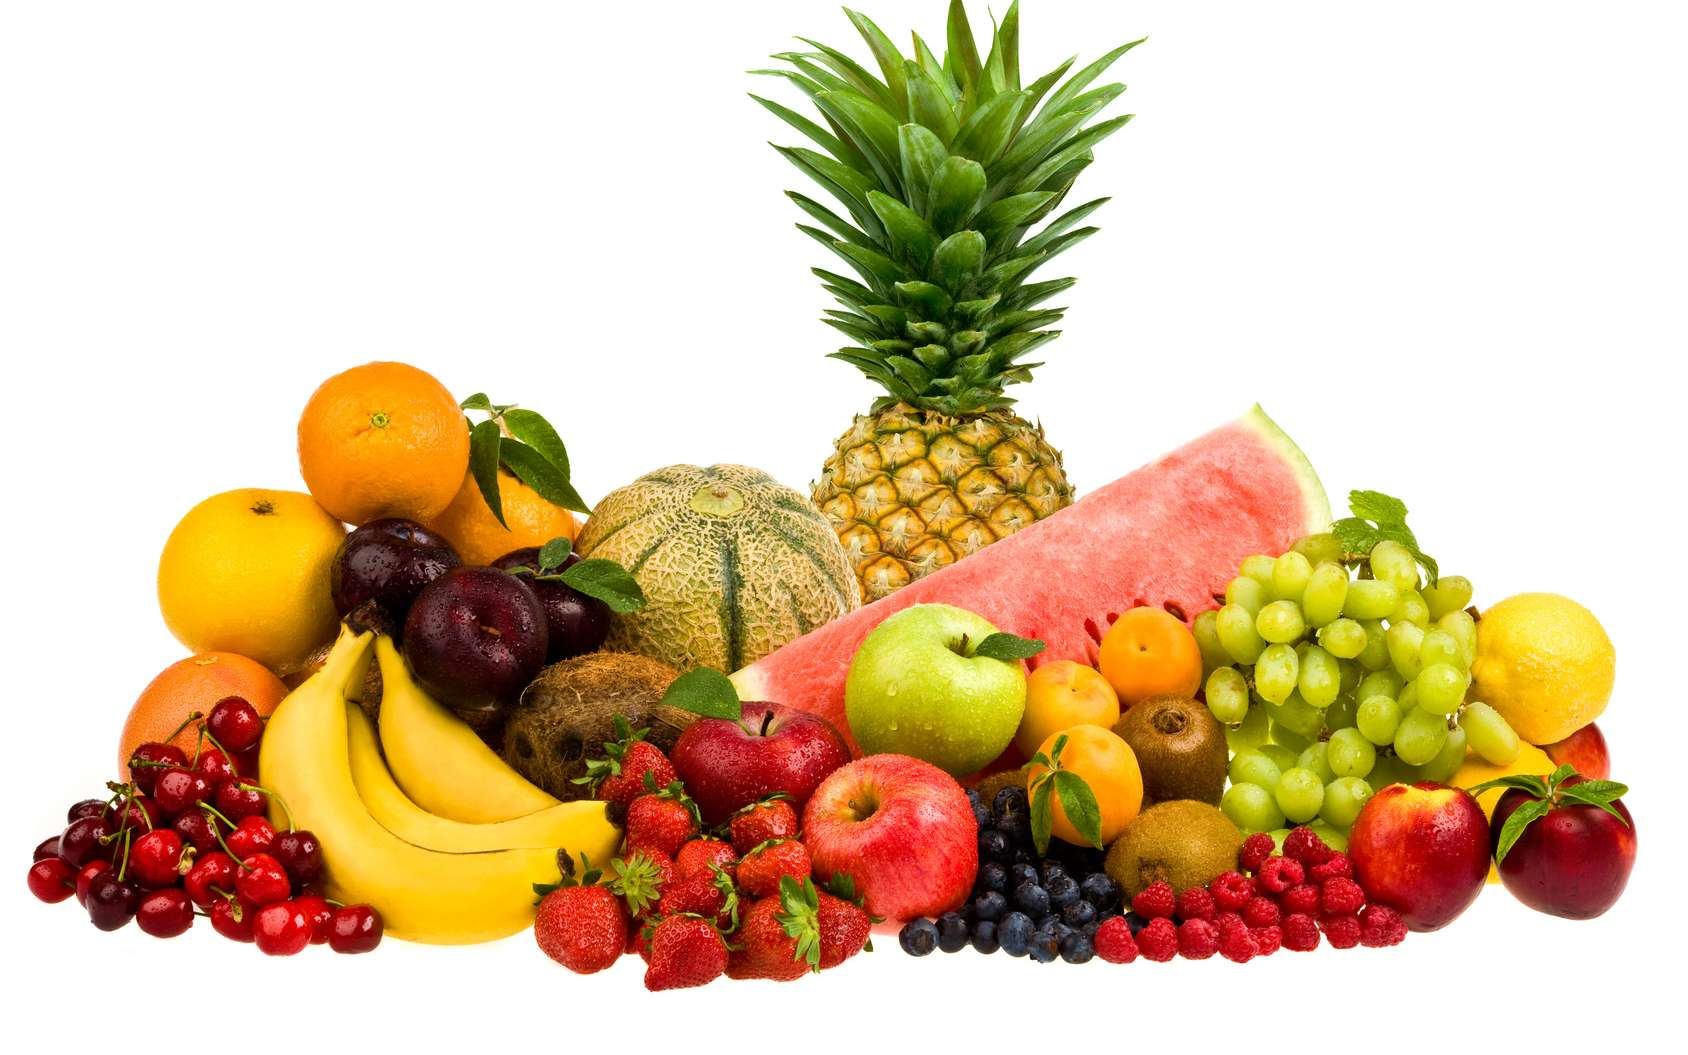 Comment faire mûrir ses fruits plus vite ? © ZoneCreative, fotolia